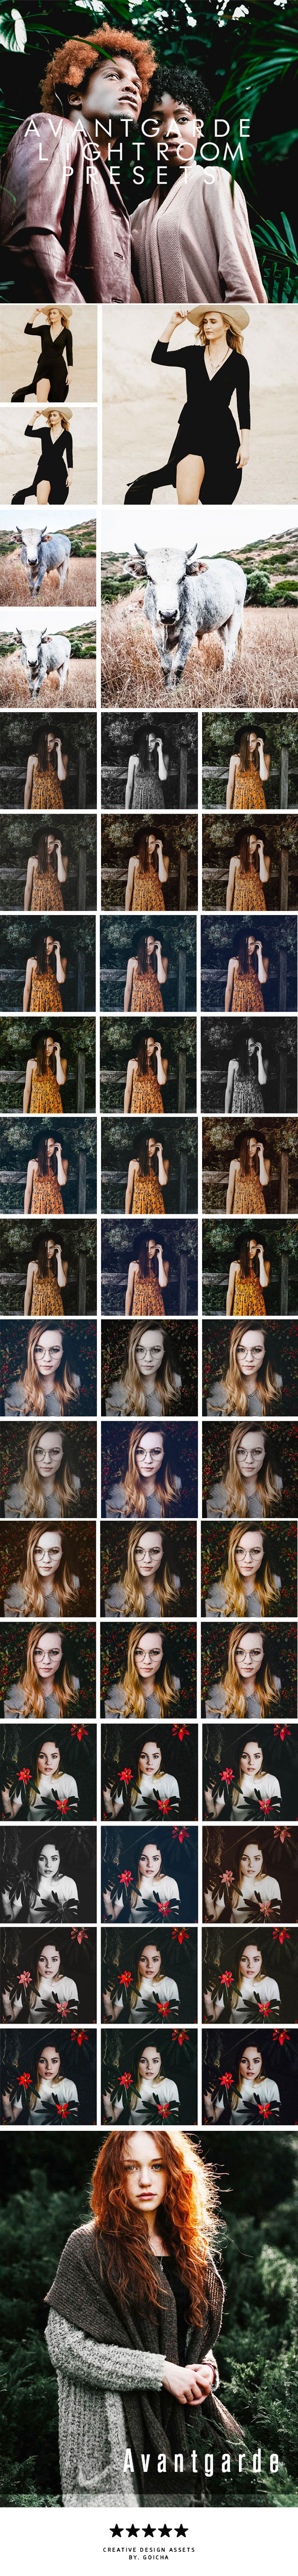 Avantgarde Lightroom Presets - Lightroom Presets Add-ons